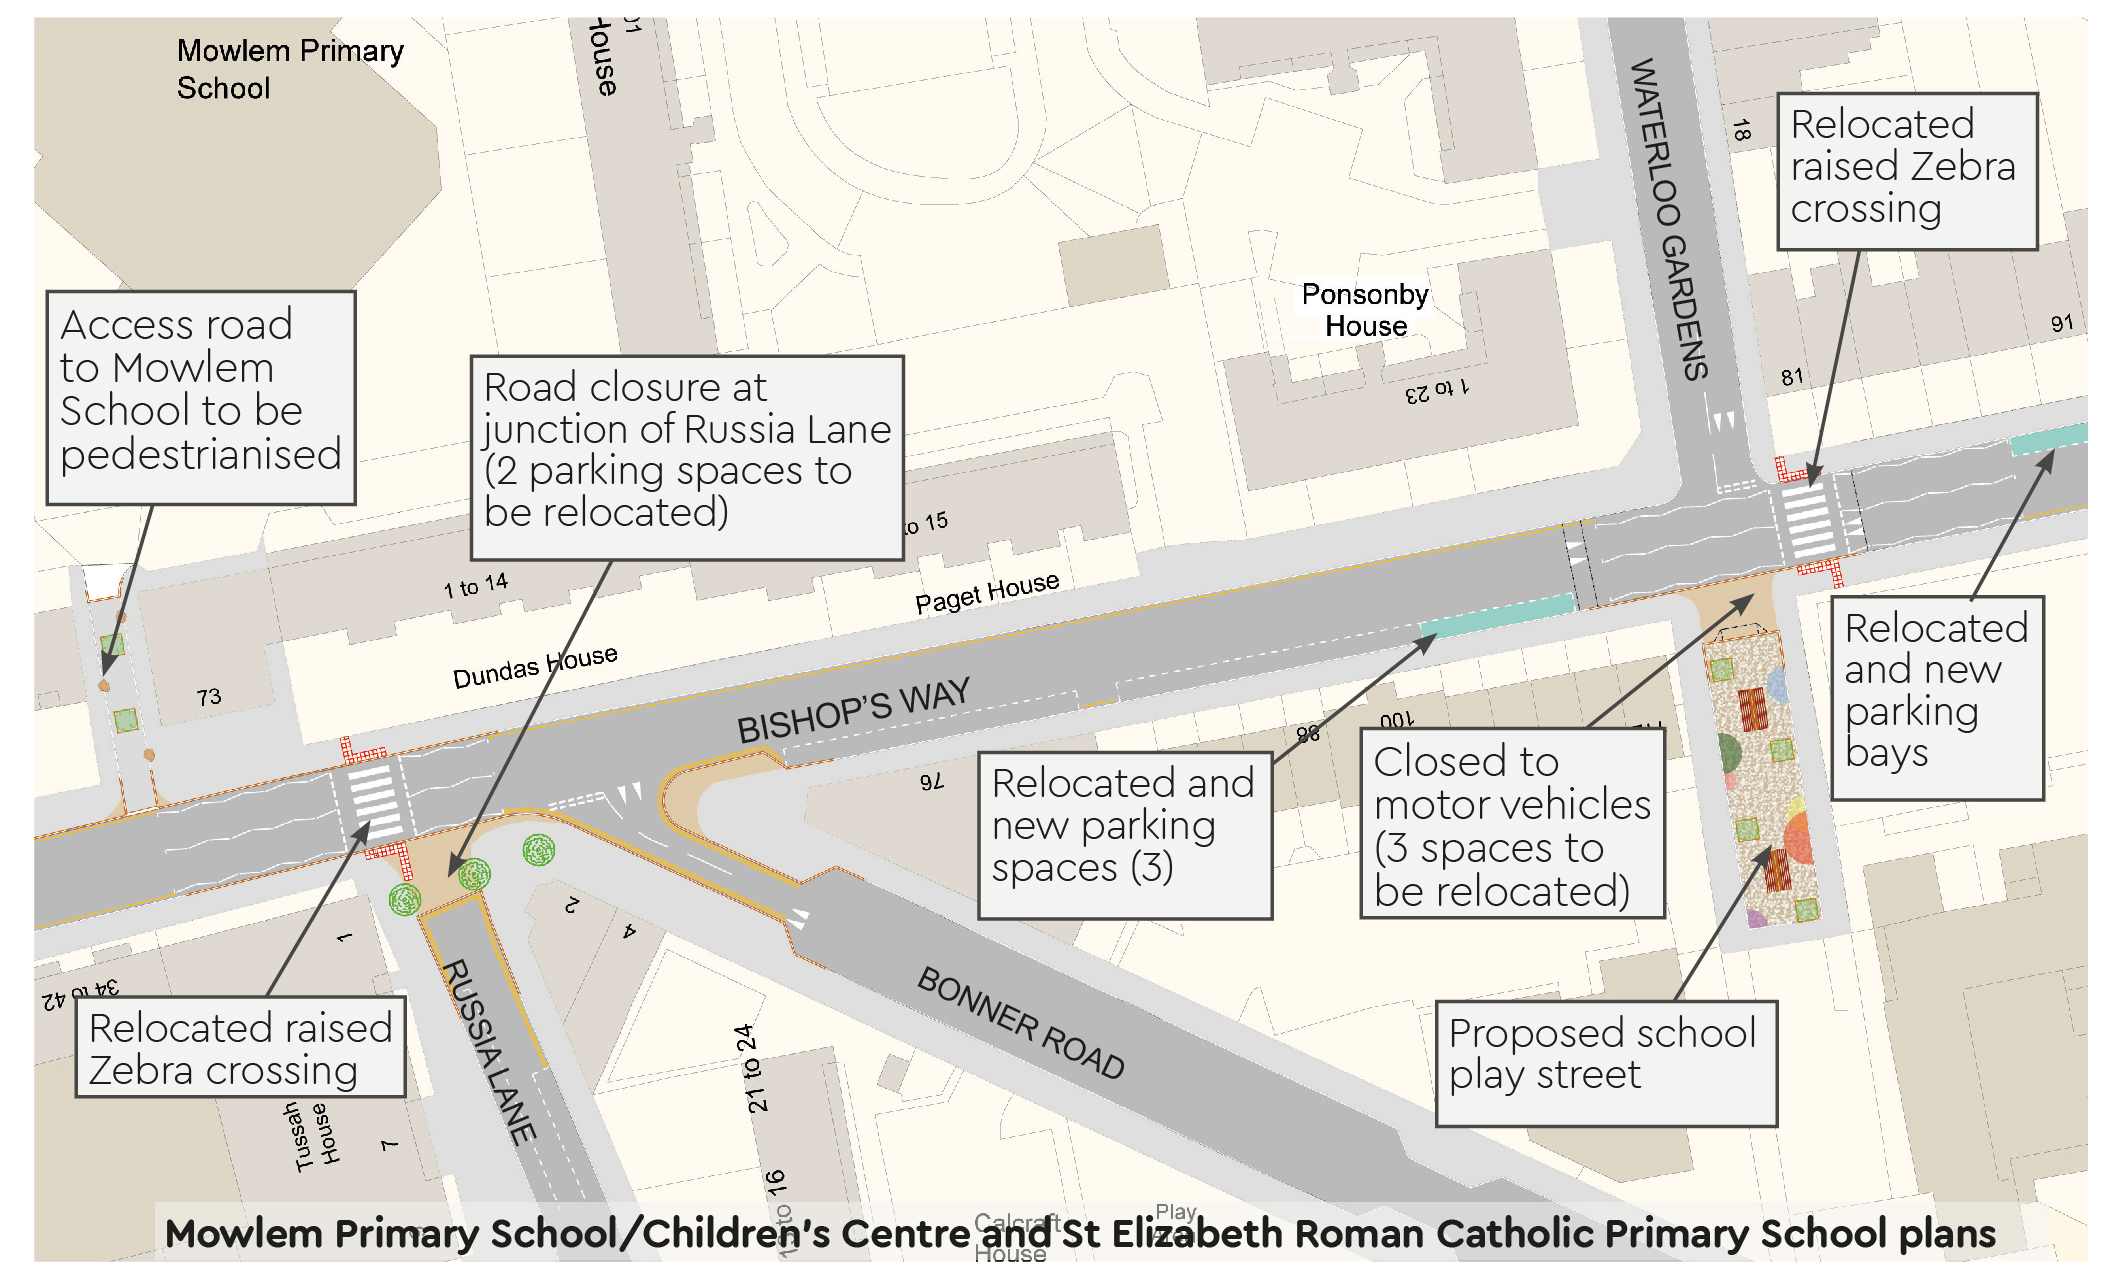 Mowlem Primary School/Children's Centre and St Elizabeth Roman Catholic Primary School Plan: access road to Mowlem School to be pedestrianised, road closure on Russia Lane at Bishops Way junction, Waterloo Gardens south of Bishops Way proposed play street and closed to vehicles and relocated parking bays on Bishops Way.